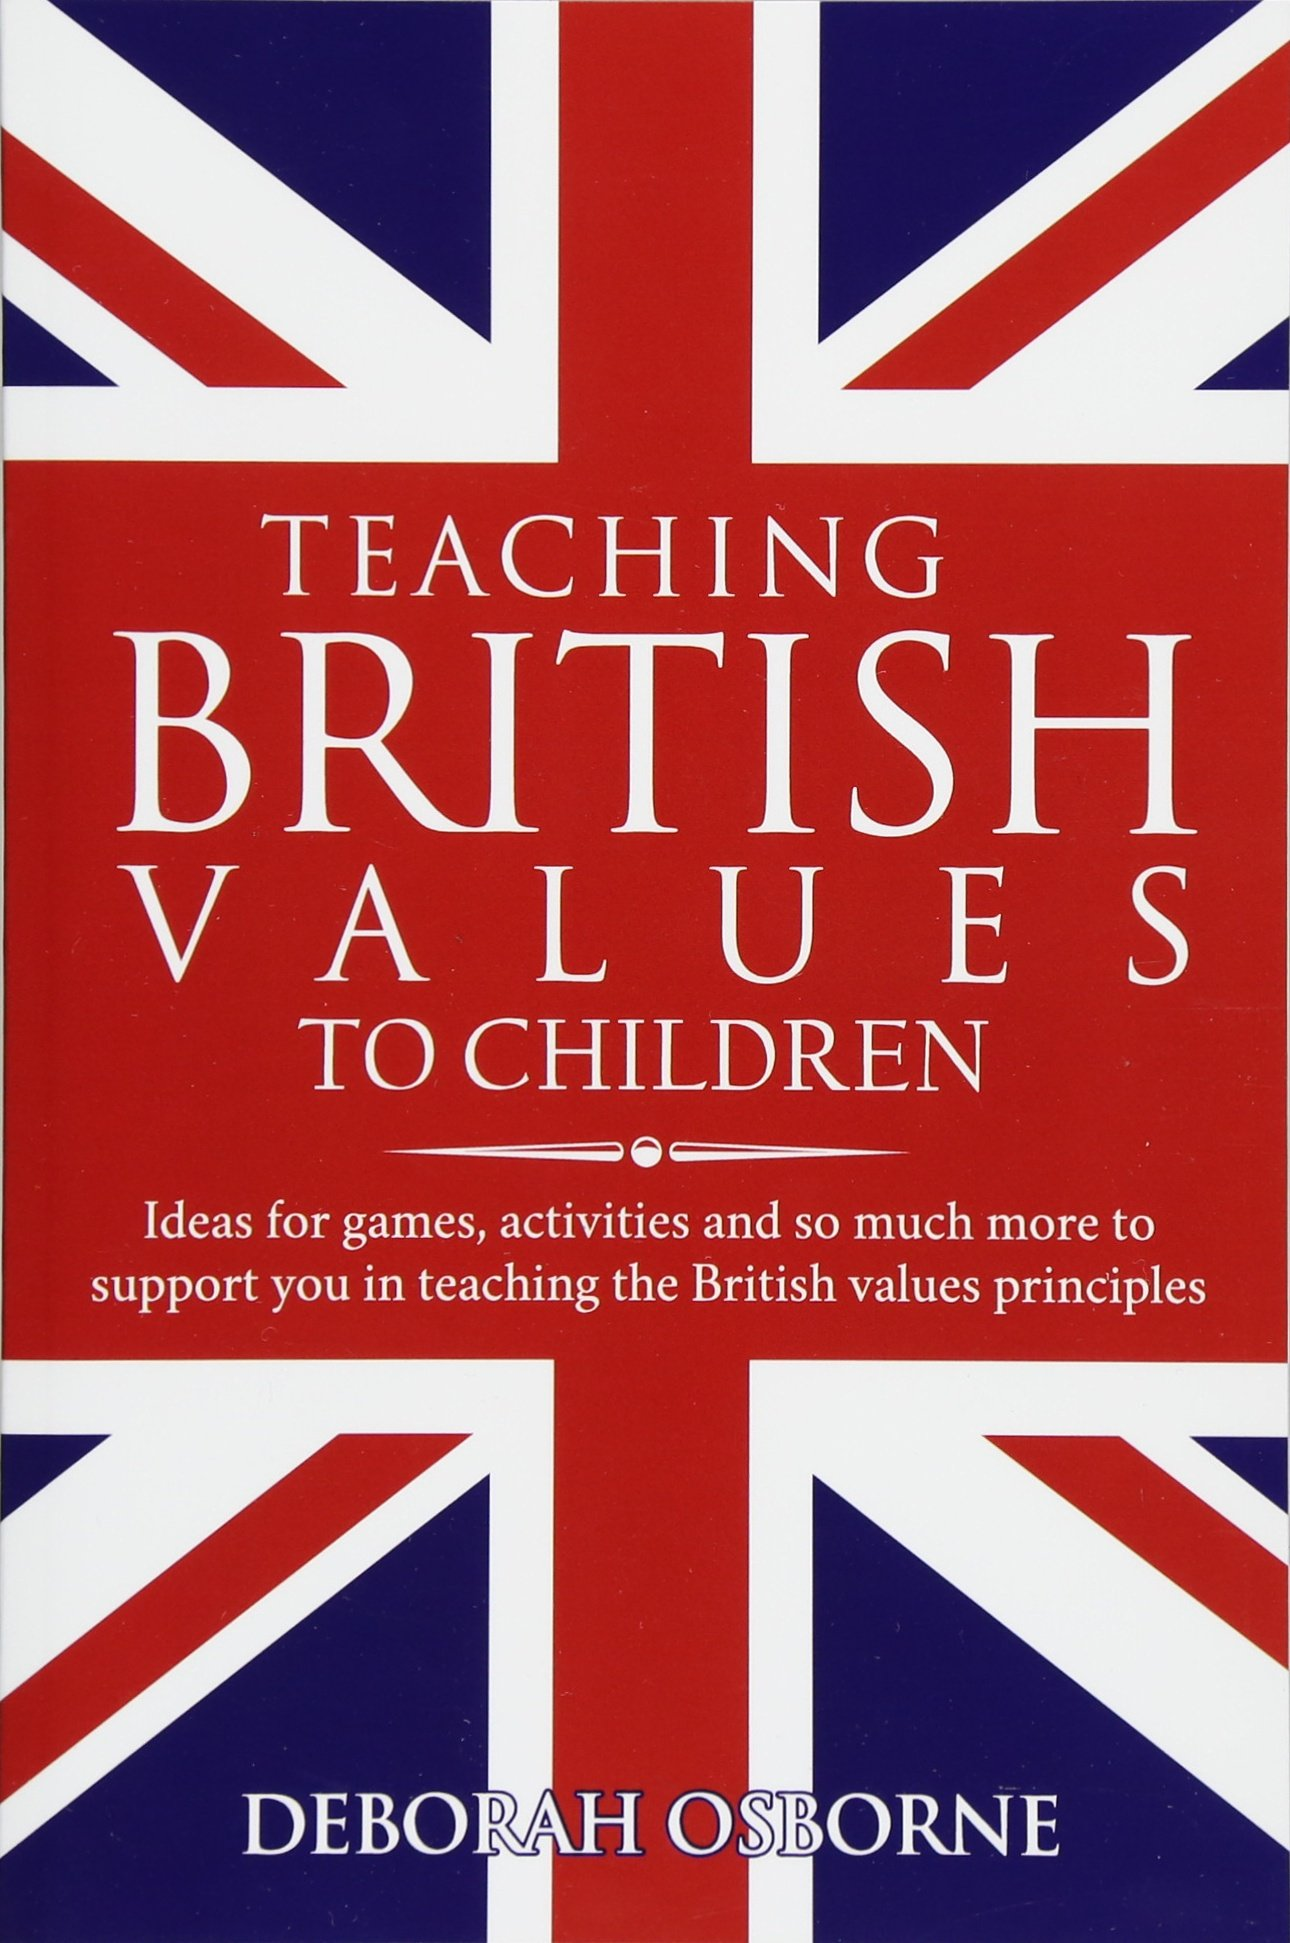 Download Teaching British Values To Children: Ideas for games, activities and so much more to support you in teaching the British values principles pdf